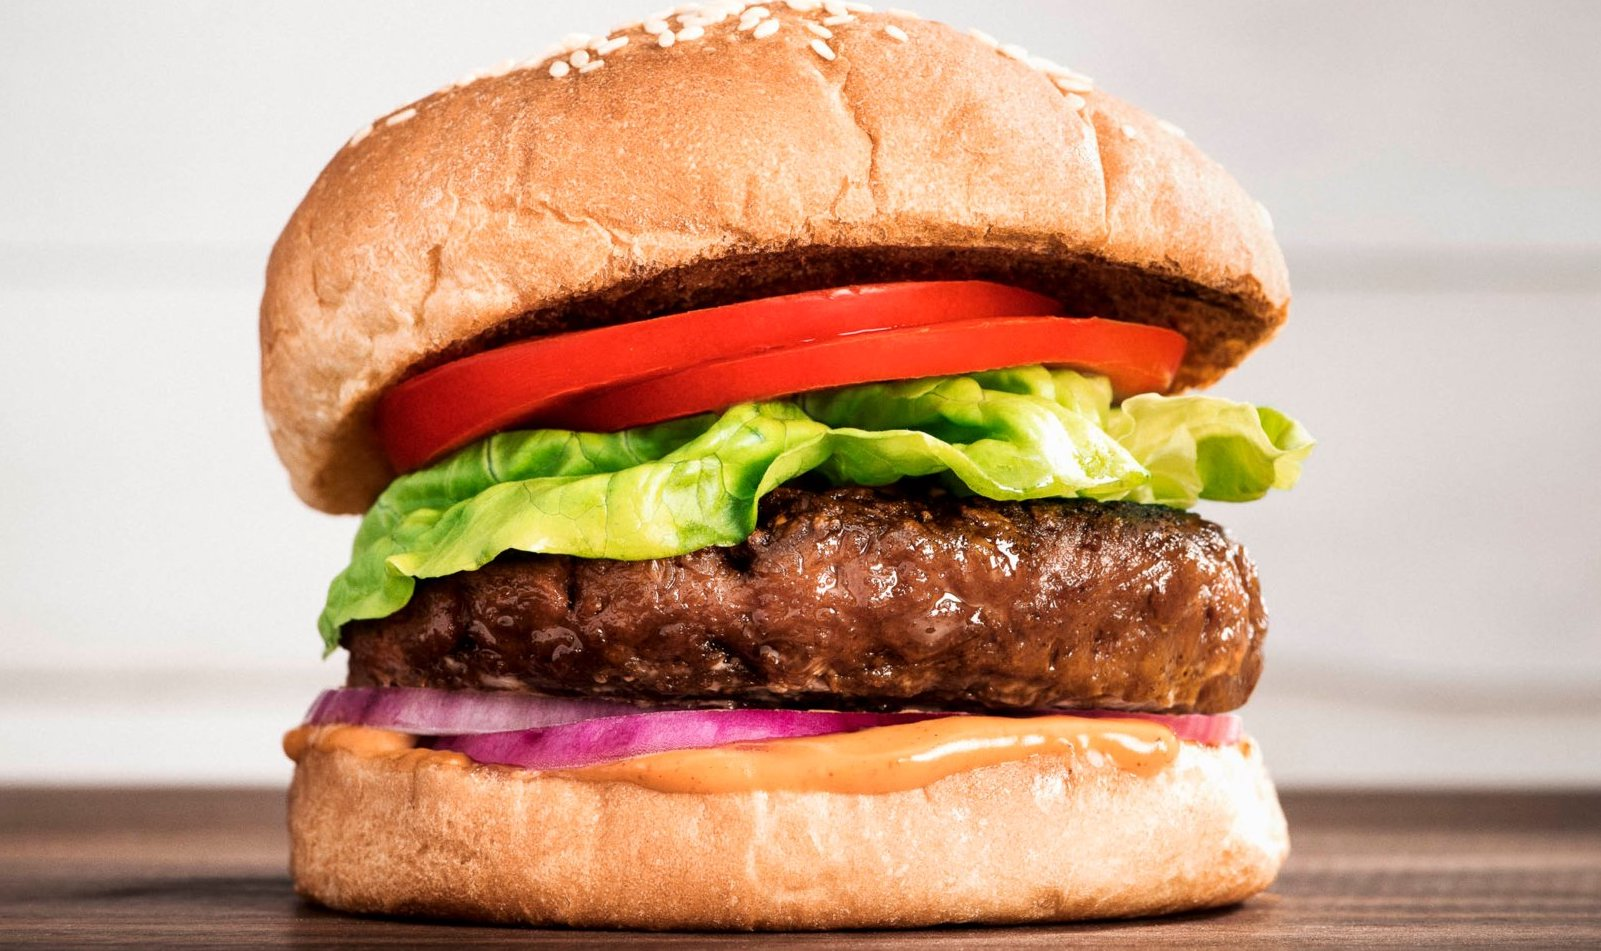 Beyond Meat's plant-based bleeding burger will soon be produced in Europe and is likely to head to UK restaurants